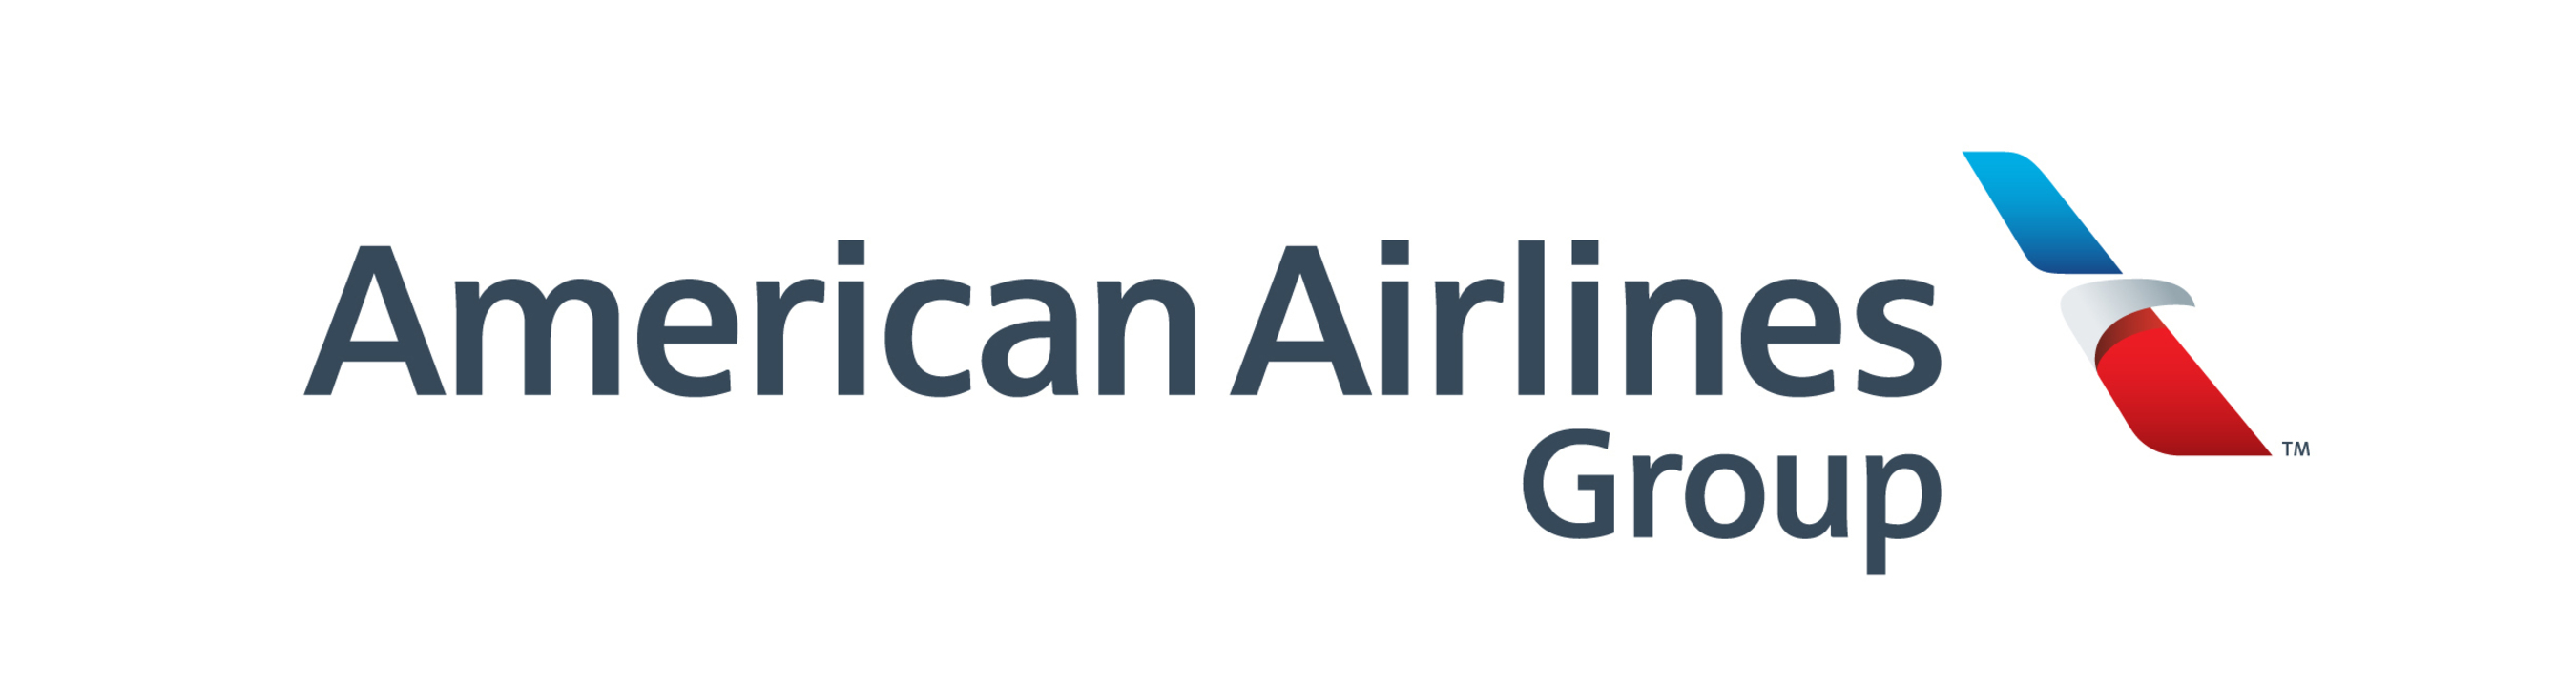 American Airlines and Interjet Announce Codeshare Agreement